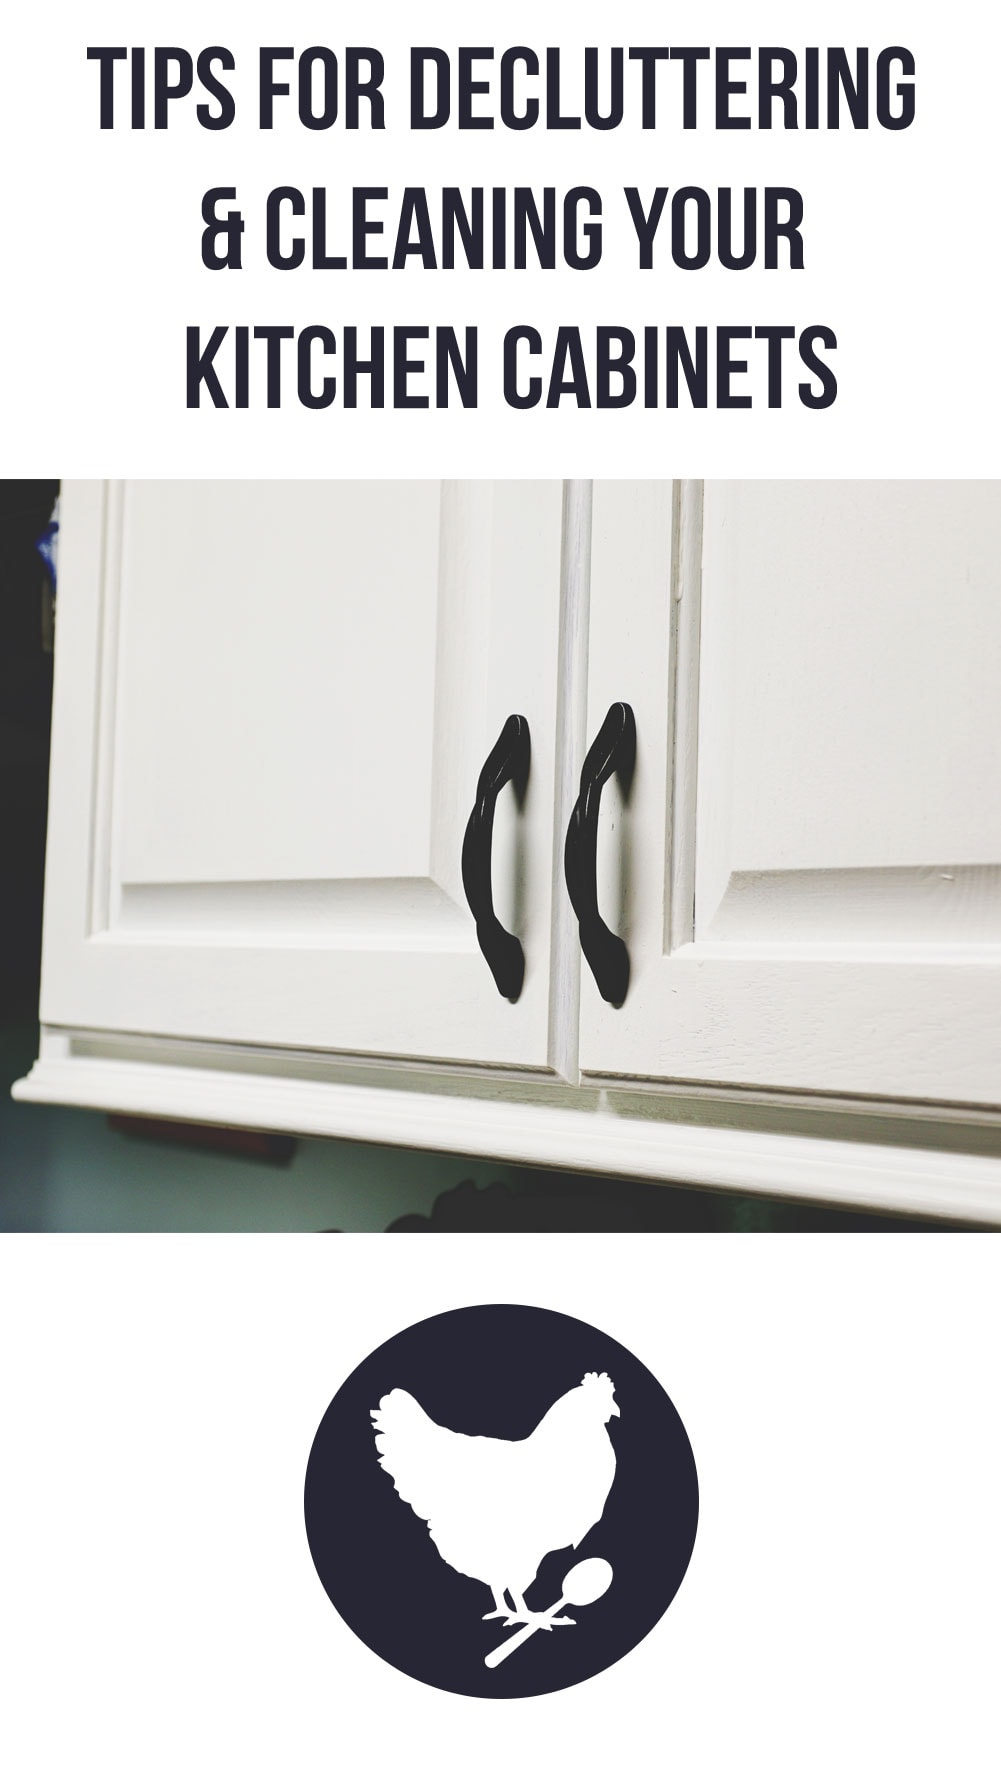 Tips for Decluttering & Cleaning Your Kitchen Cabinets | Cosmopolitan Cornbread